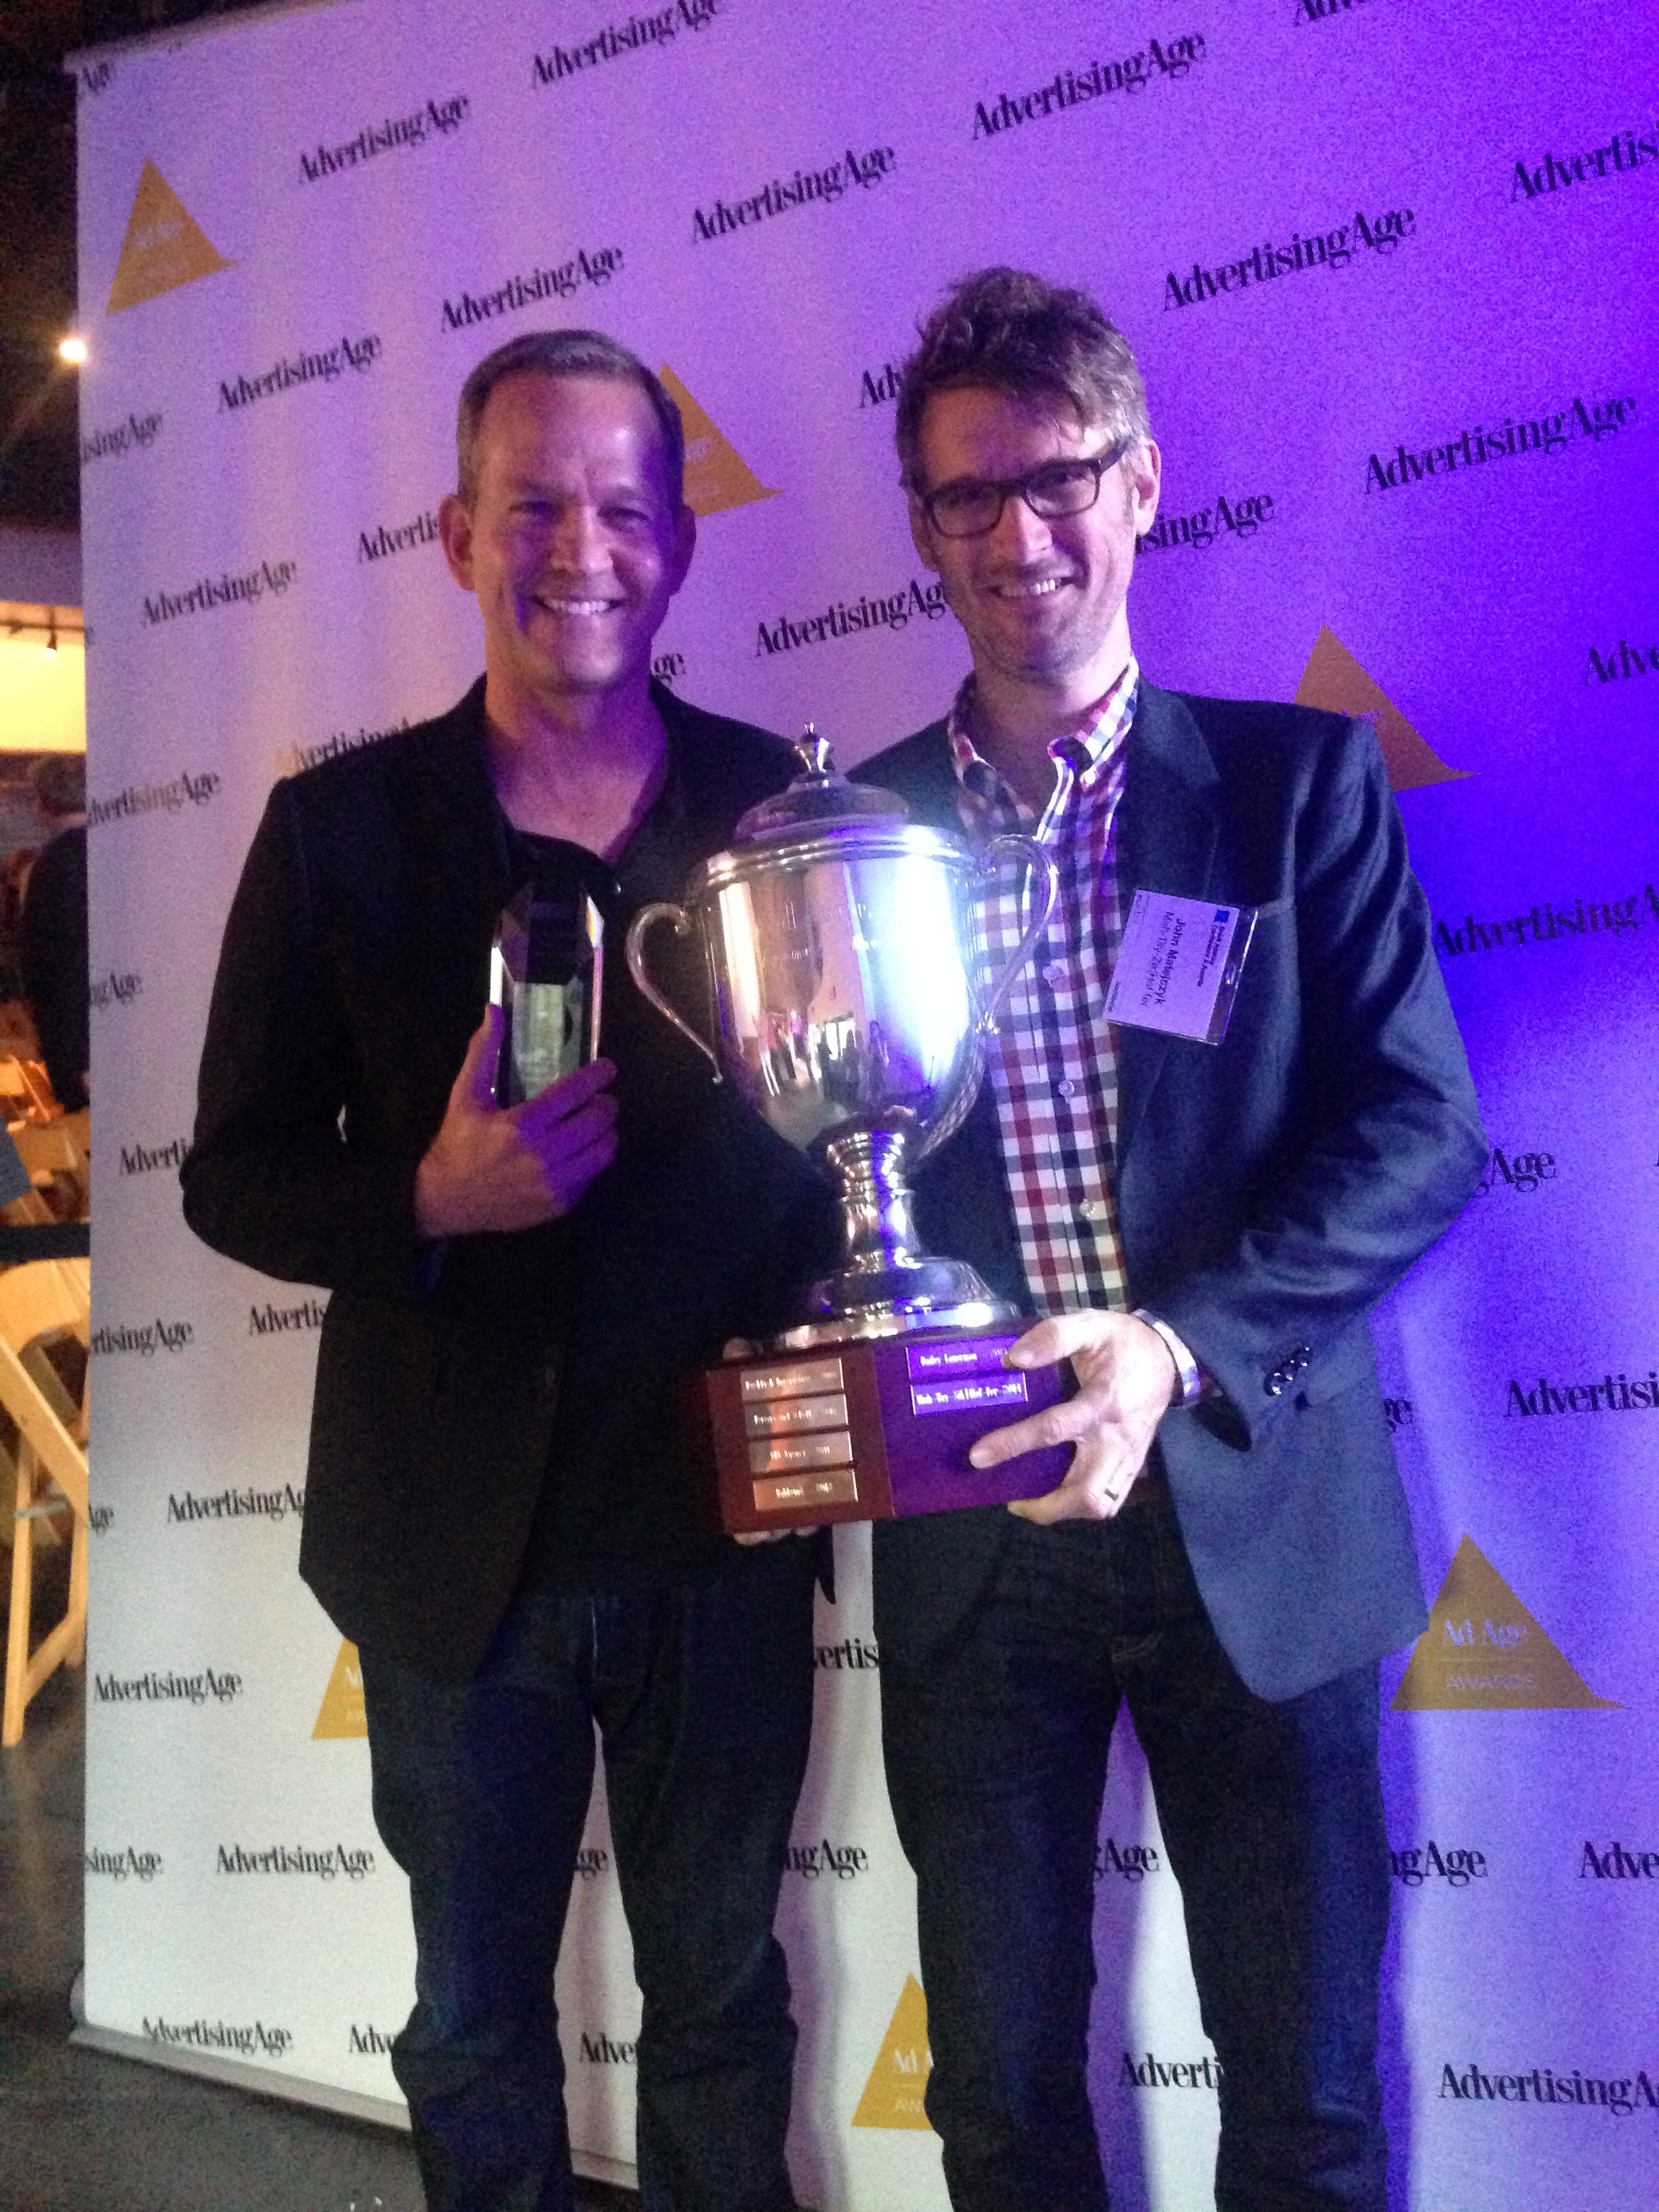 Ad Age Agency of the Year Award Winner